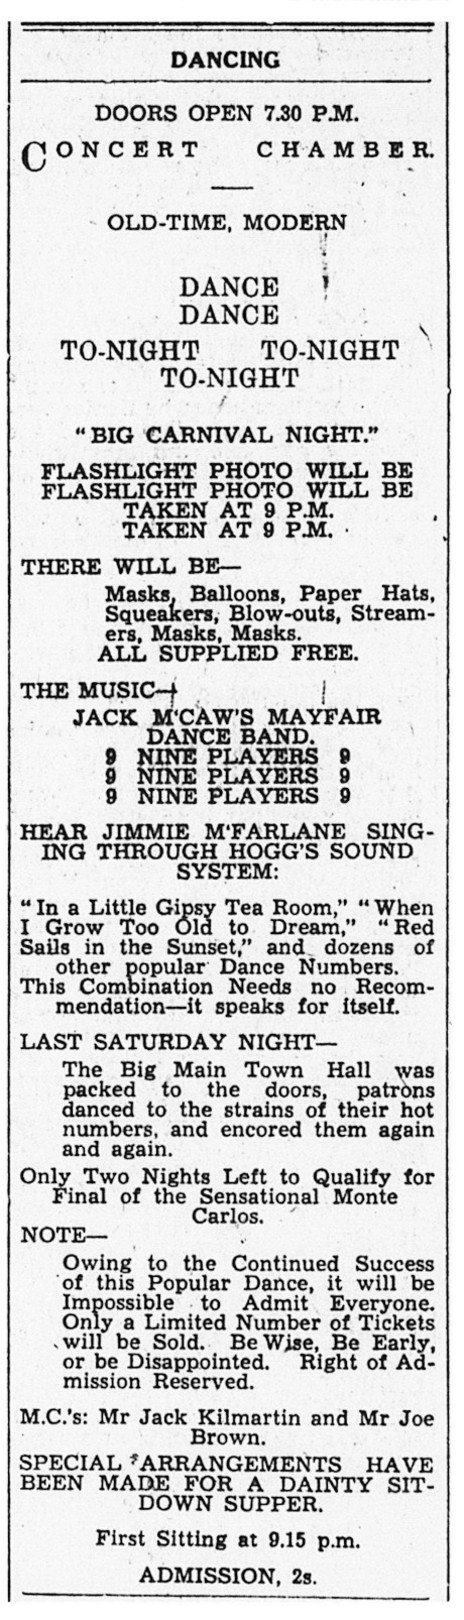 Hero thumb odt 7 nov 1936 joe brown2